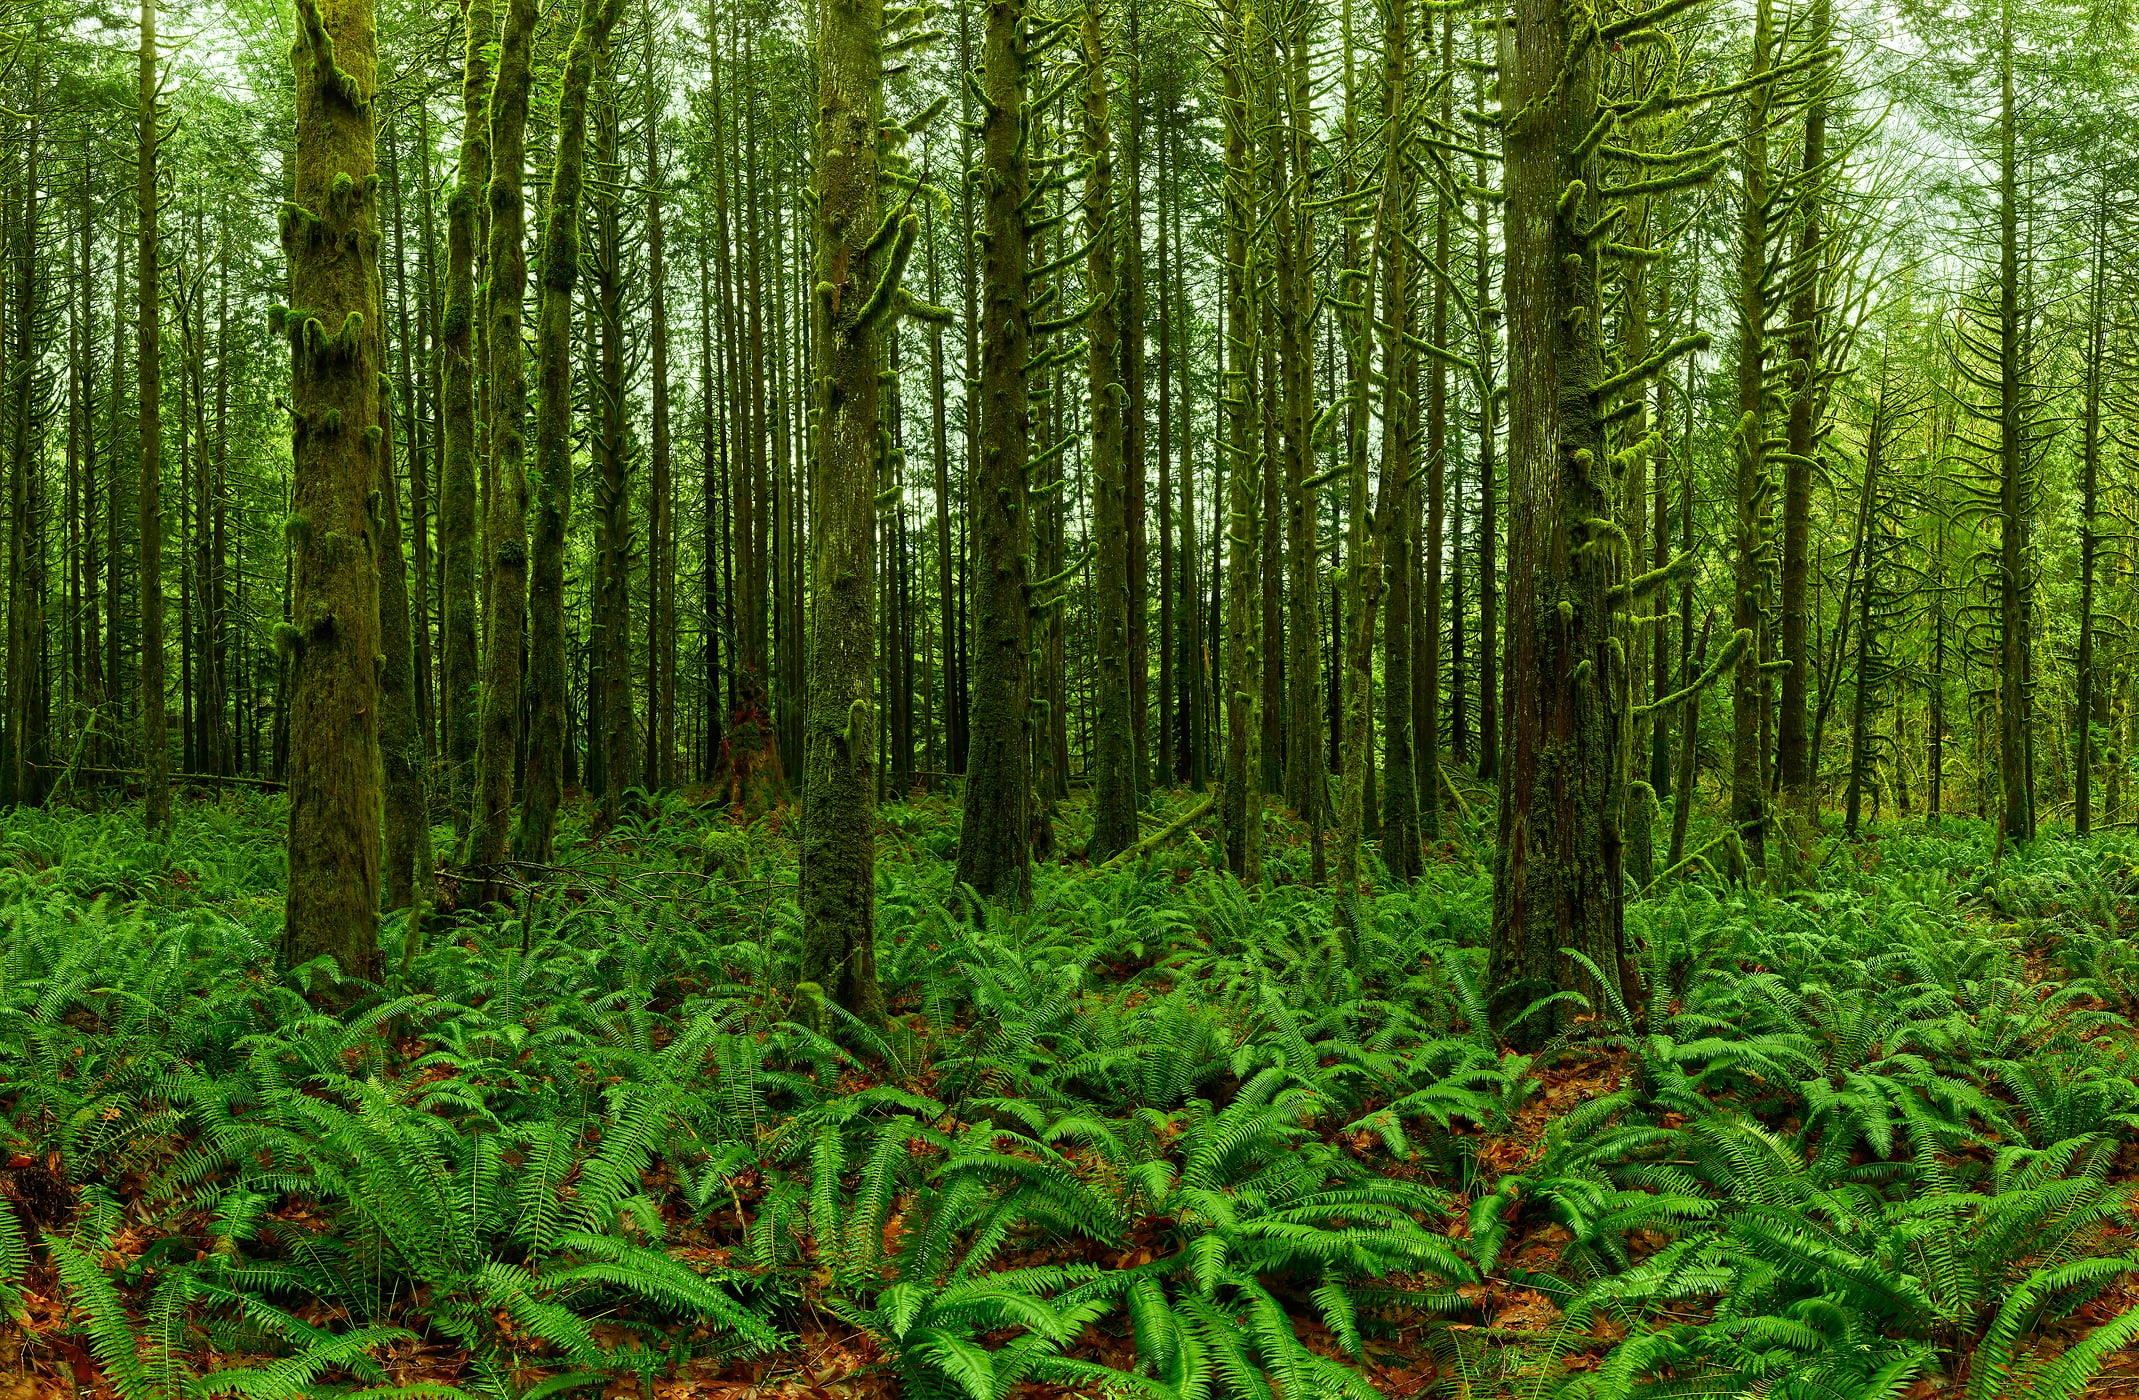 866 megapixels! A very high resolution, large-format VAST photo print of a forest with many ferns on the ground; nature photograph created by Chris Collacott